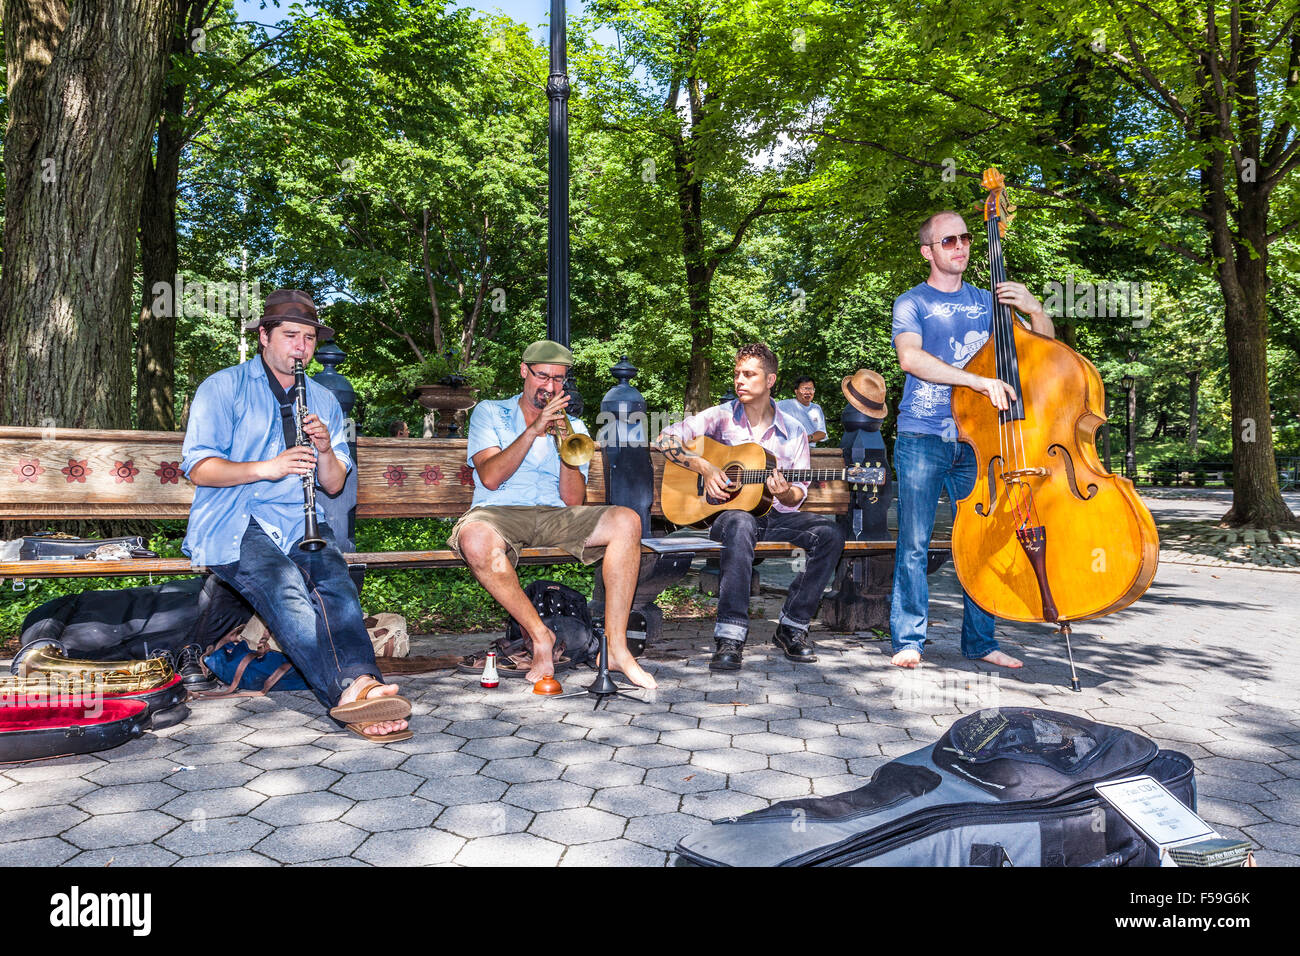 Tin Pan Jazz Band performing in Central Park, New York City, USA. - Stock Image